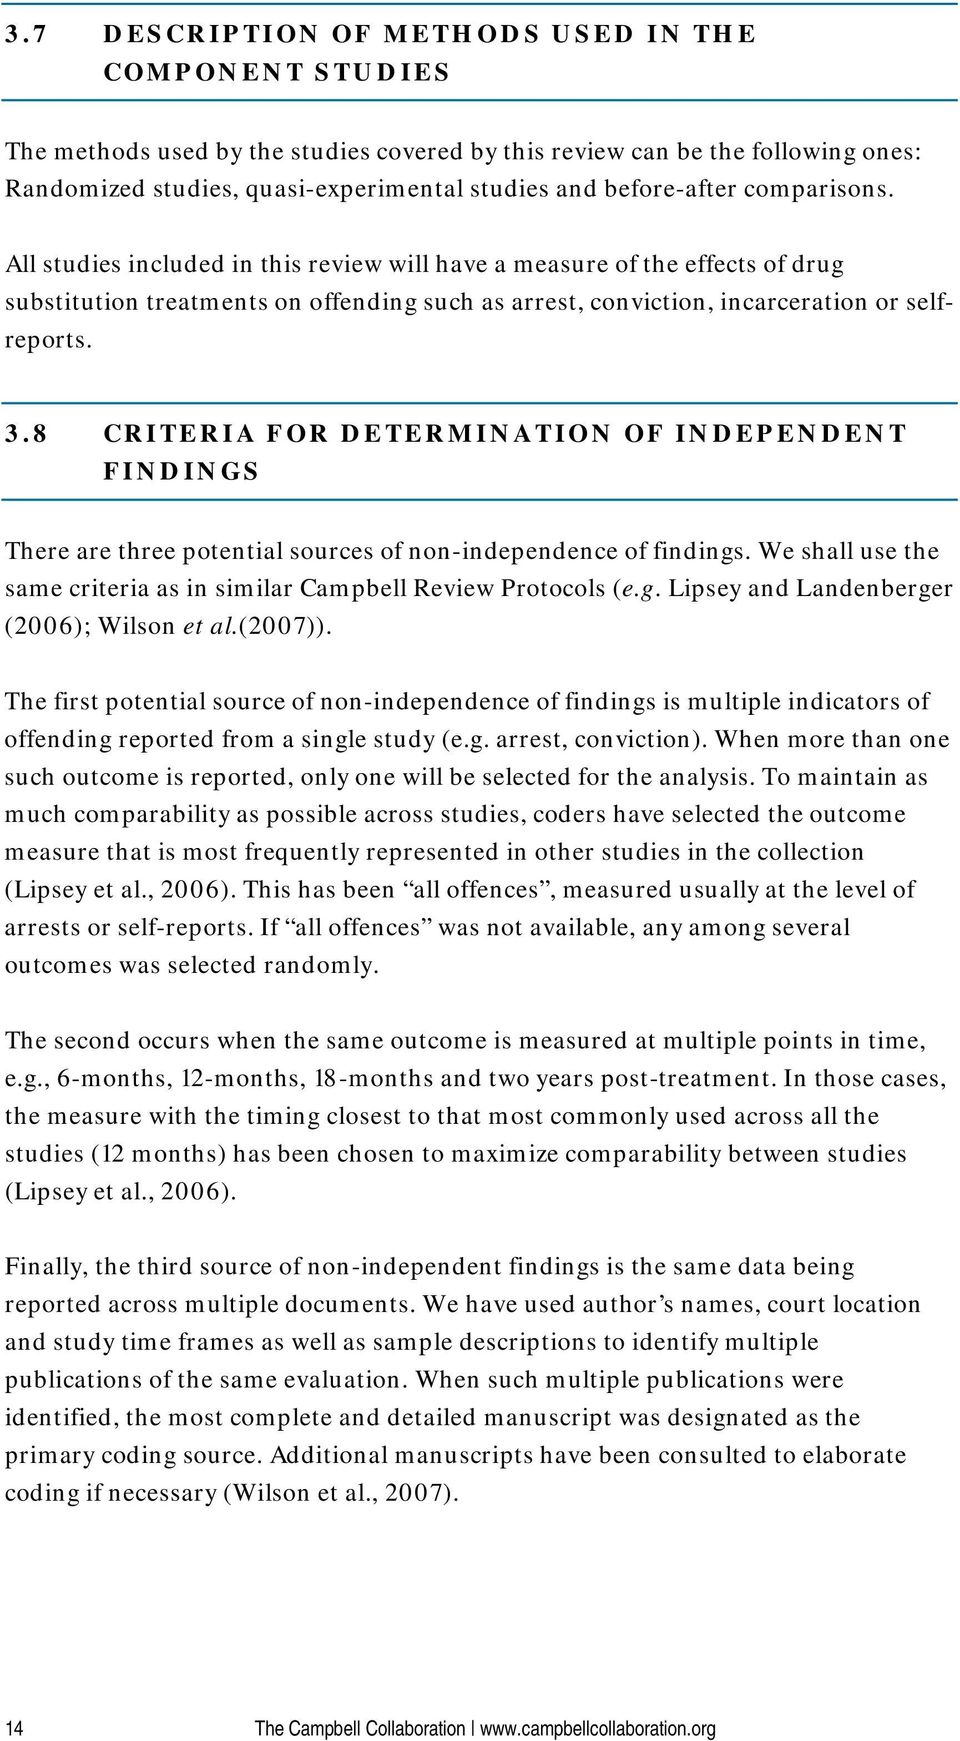 3.8 CRITERIA FOR DETERMINATION OF INDEPENDENT FINDINGS There are three potential sources of non-independence of findings. We shall use the same criteria as in similar Campbell Review Protocols (e.g. Lipsey and Landenberger (2006); Wilson et al.